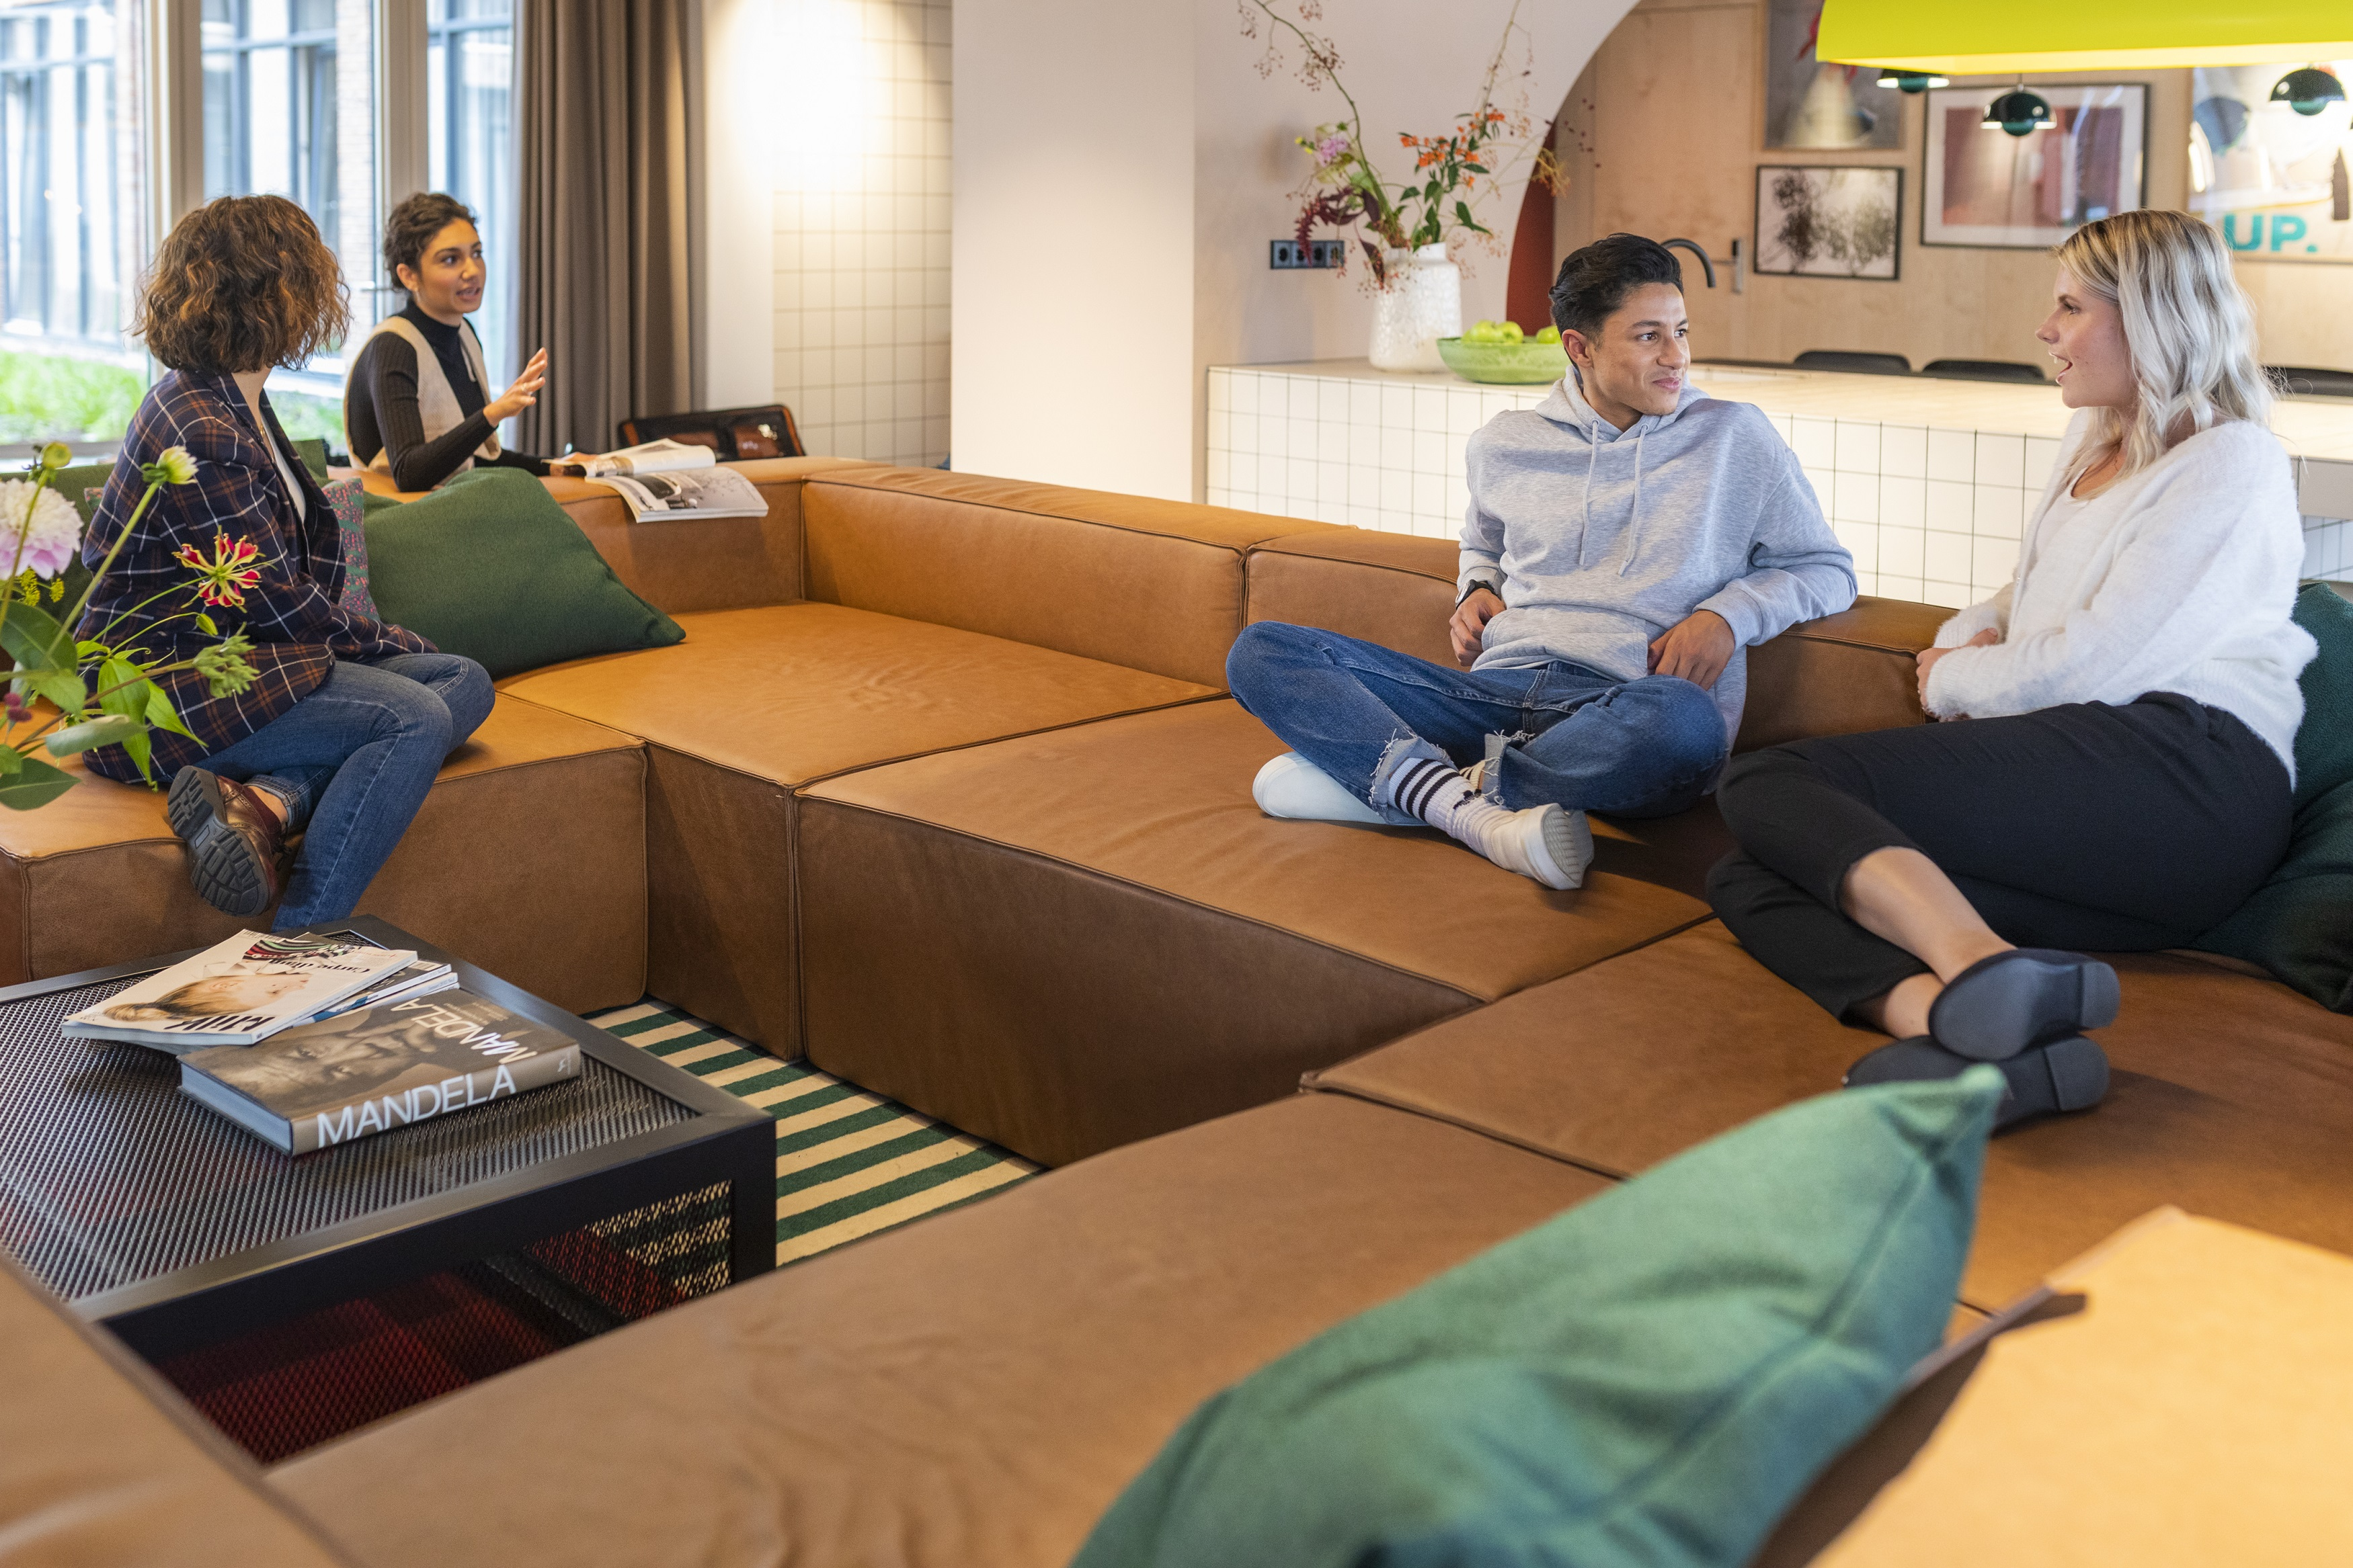 OurDomain Amsterdam Diemen lounge with residents relaxing